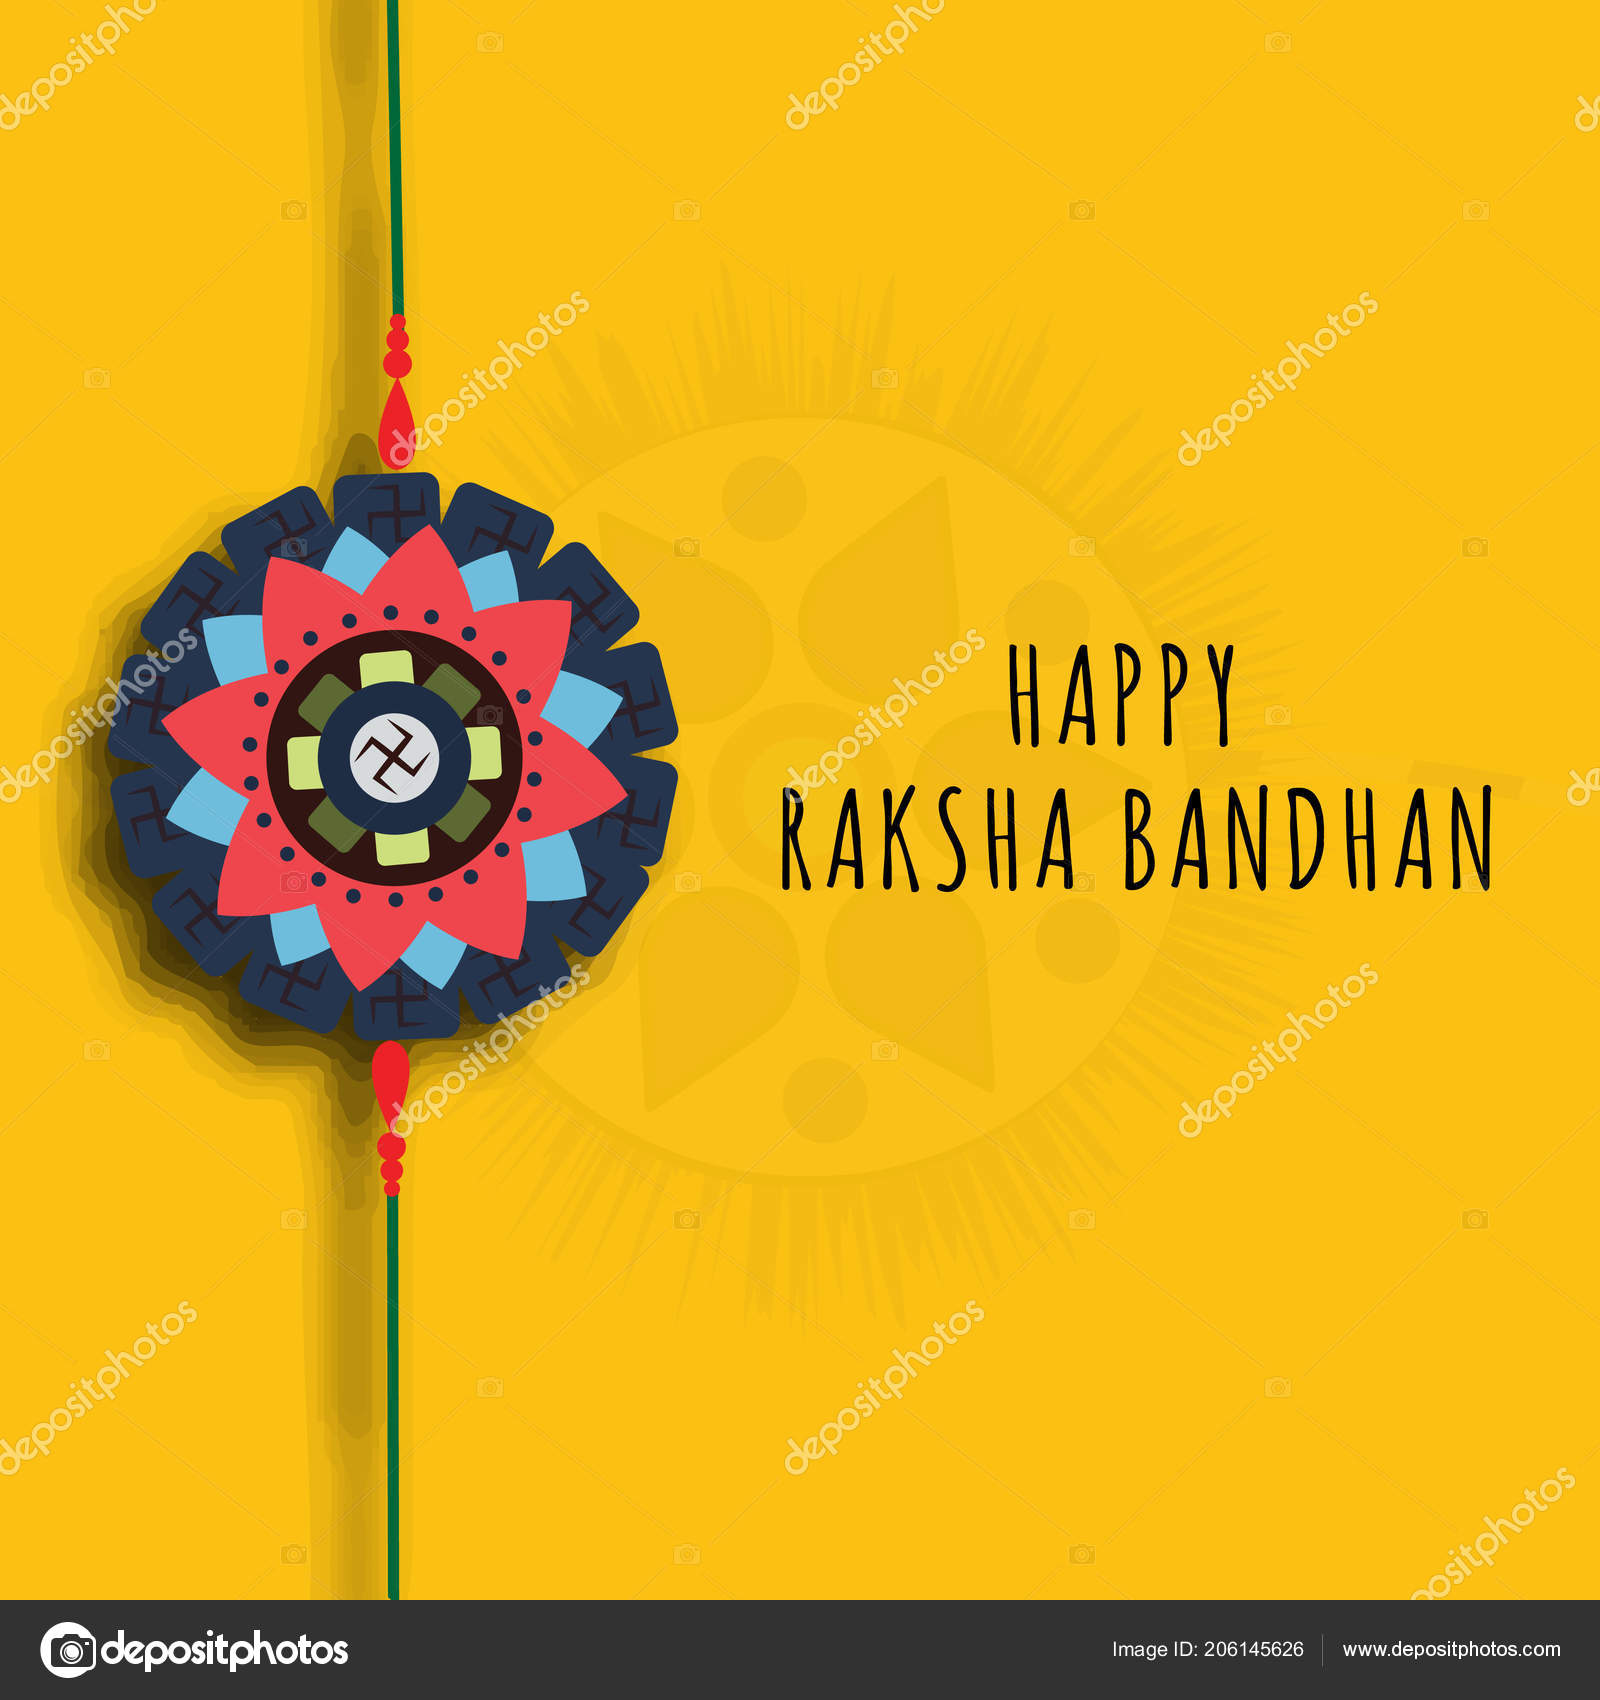 Happy Raksha Bandhan Greeting Card Poster Background Design Banner